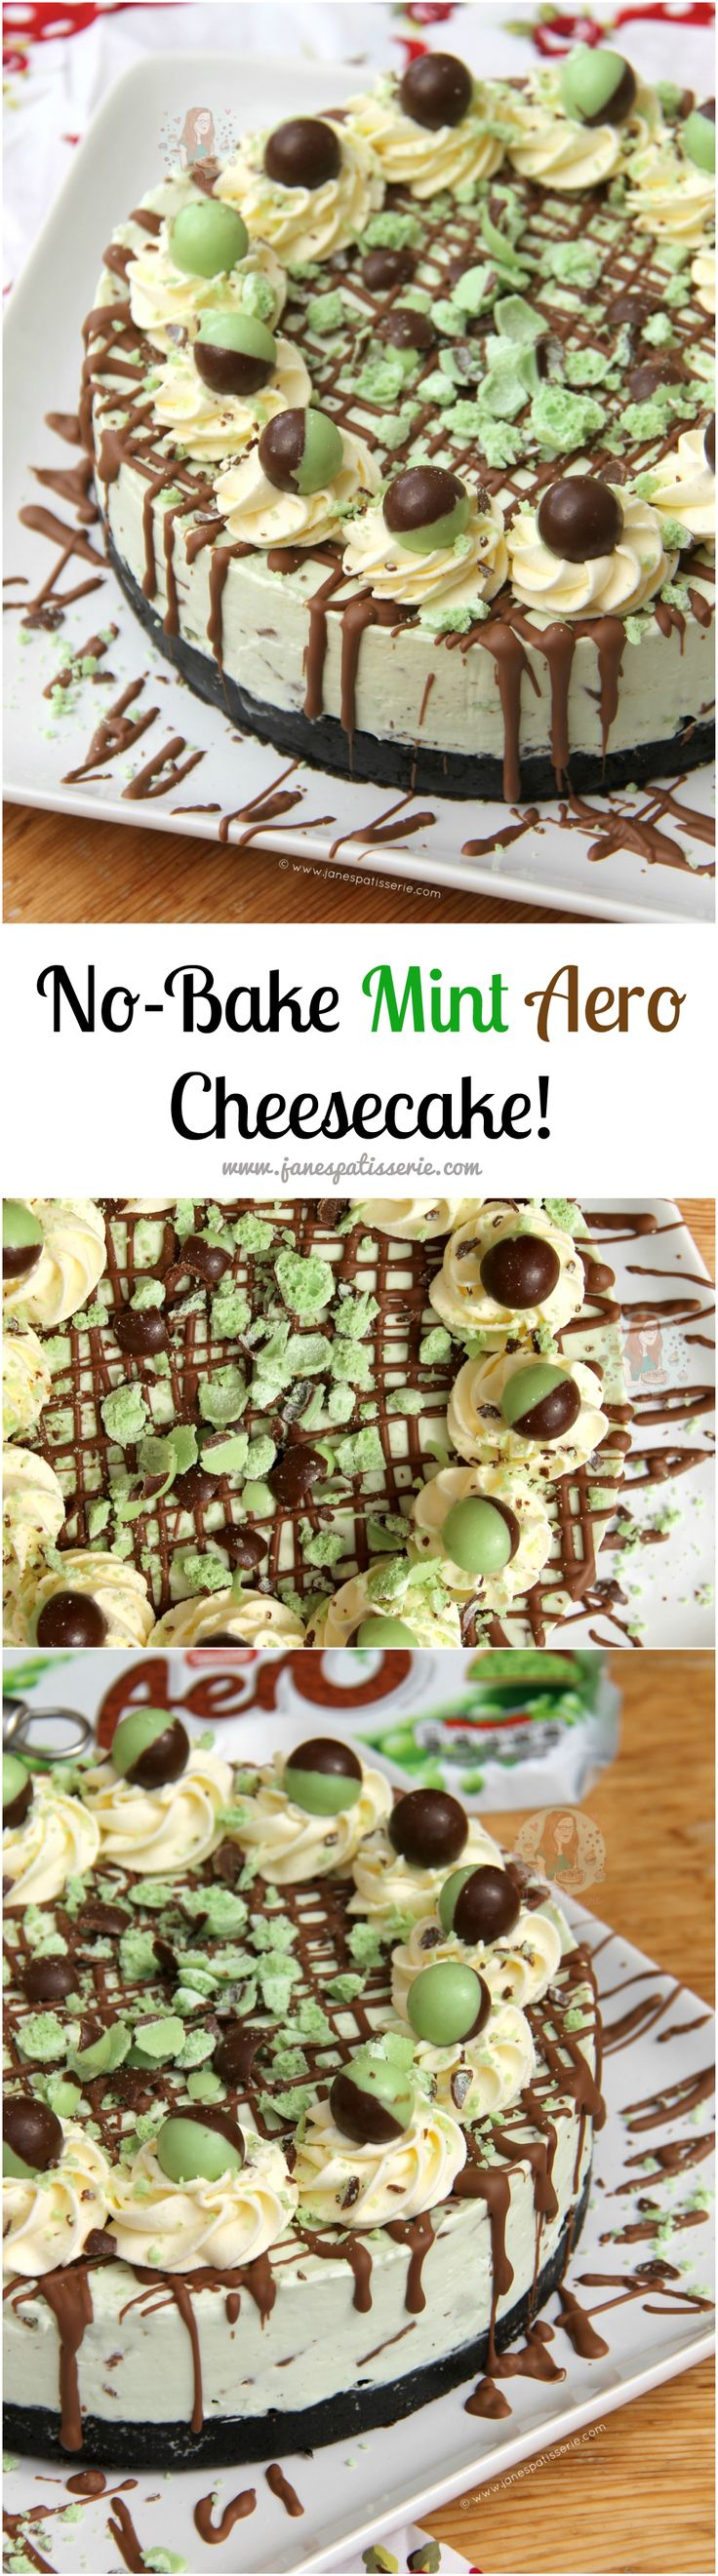 No-Bake Mint Aero Cheesecake!! ❤️ A Creamy, Sweet, and Delicious No-Bake Mint…